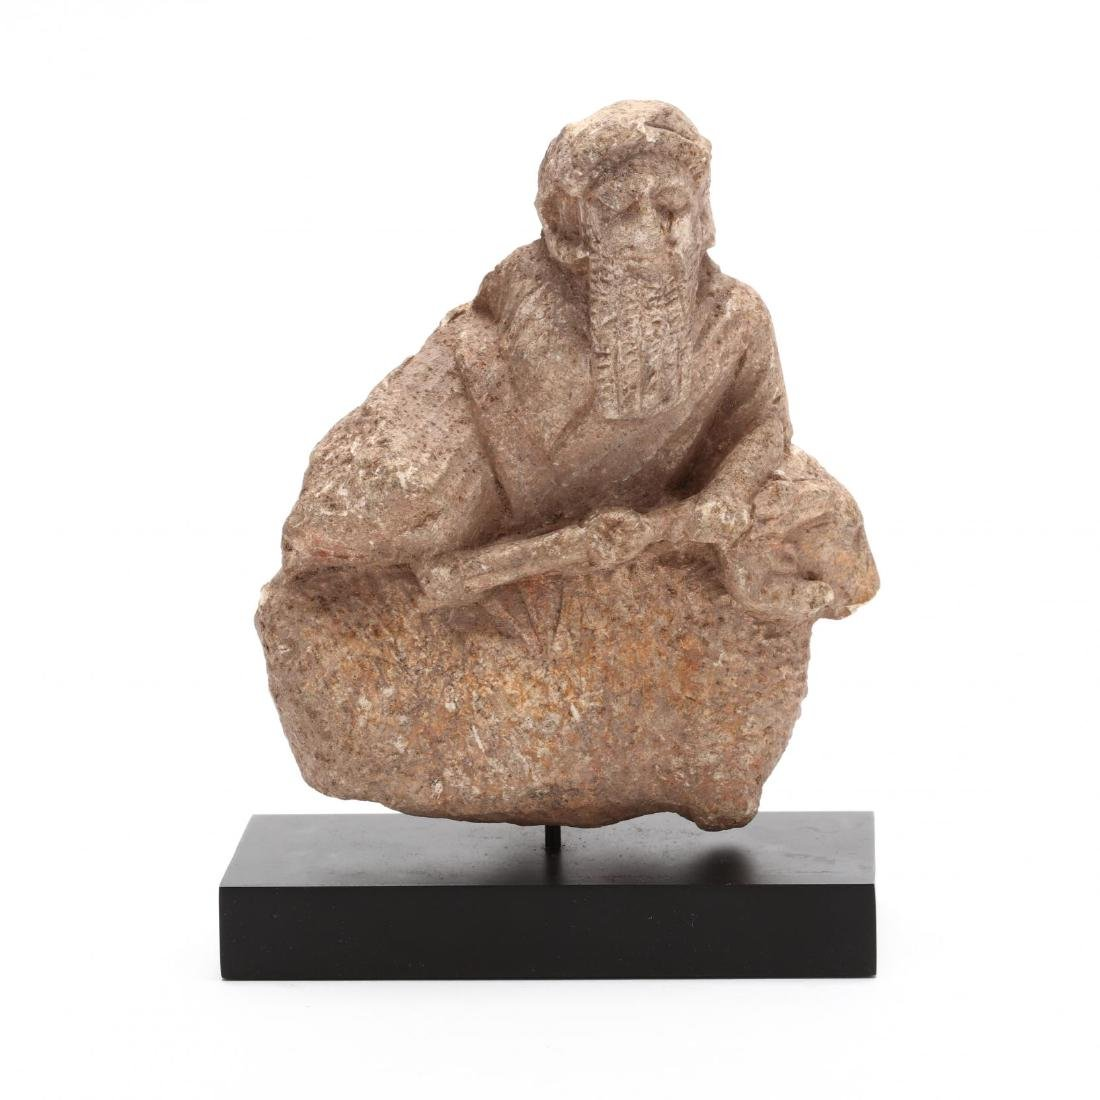 Cypriot Archaic Limestone Carving of a Deity